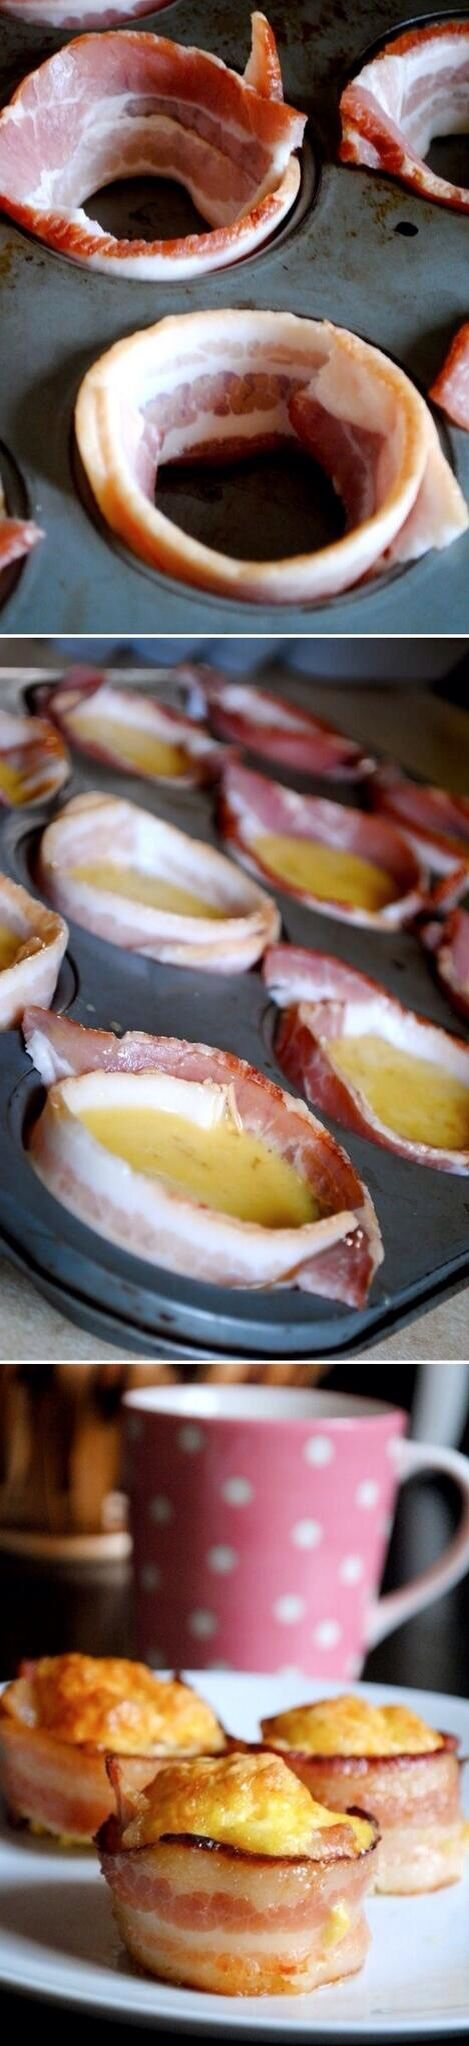 .Bacon and Egg Suprise